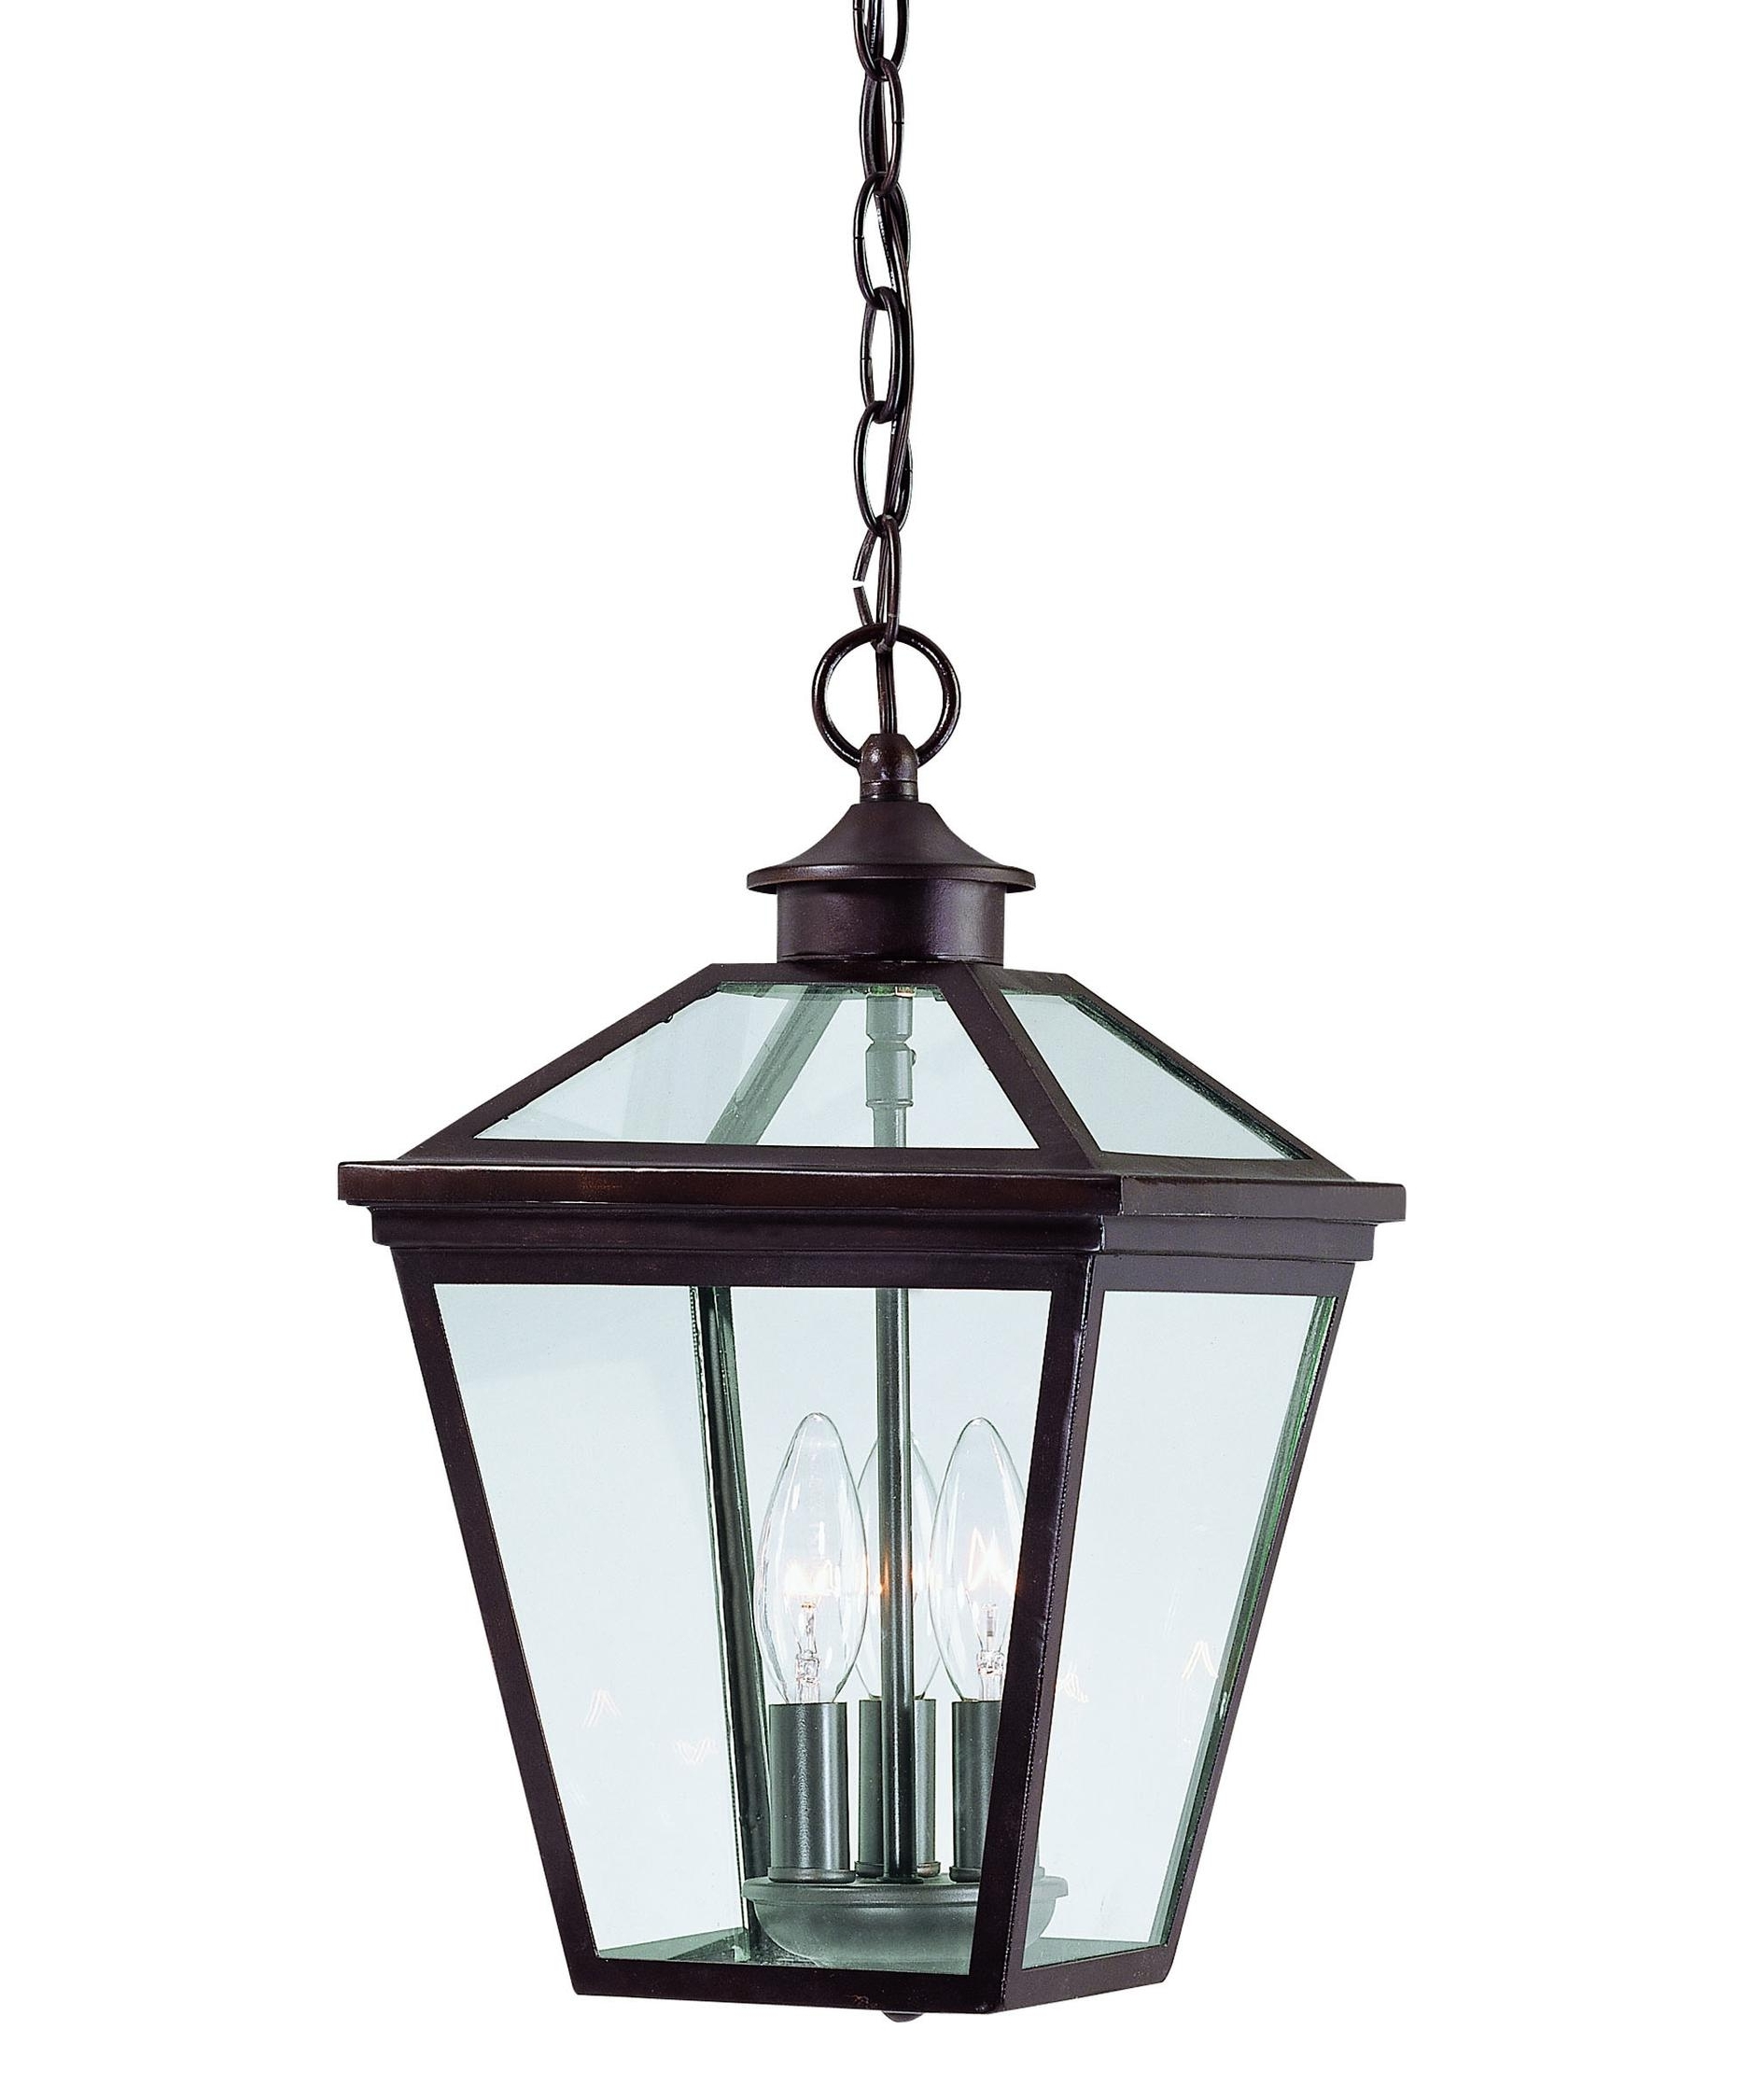 Most Recent Outdoor Hanging Glass Lights Within Savoy House 5 146 13 Ellijay 9 Inch Wide 3 Light Outdoor Hanging (View 7 of 20)